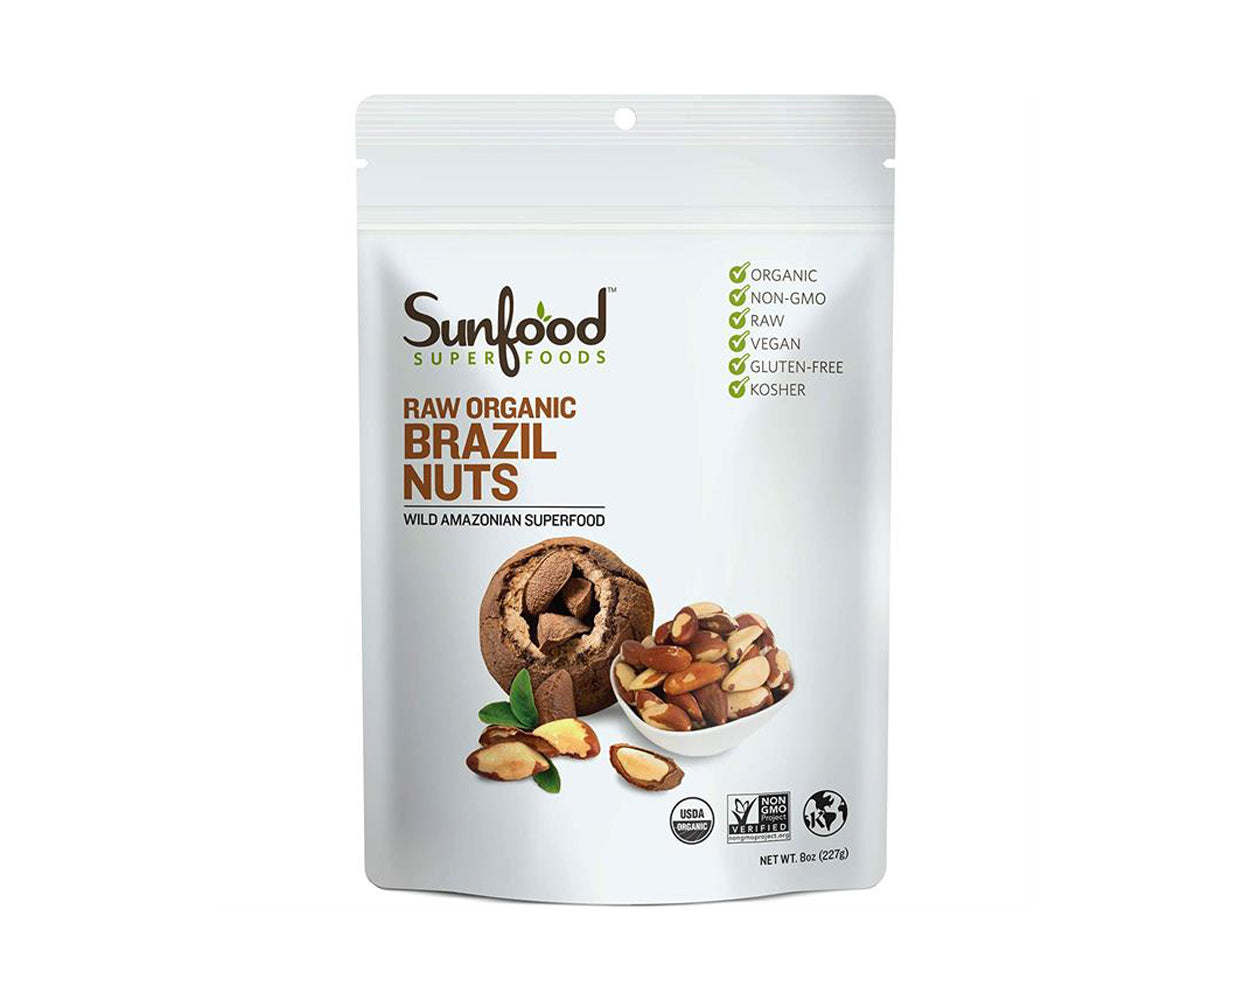 Brazil Nuts, 8oz, Organic, Raw